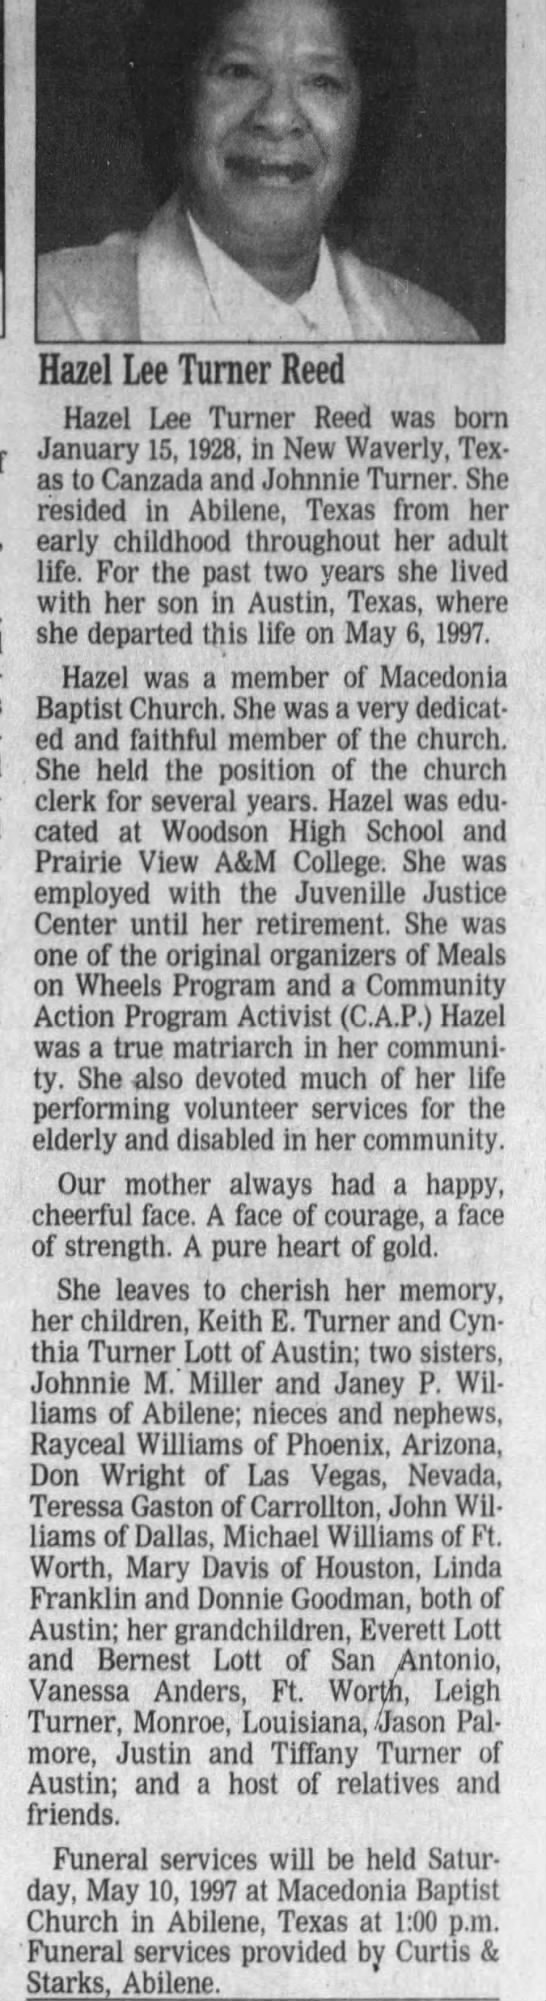 Obituary For Hazel Lee Turner Reed 1928 1997 Newspapers Com